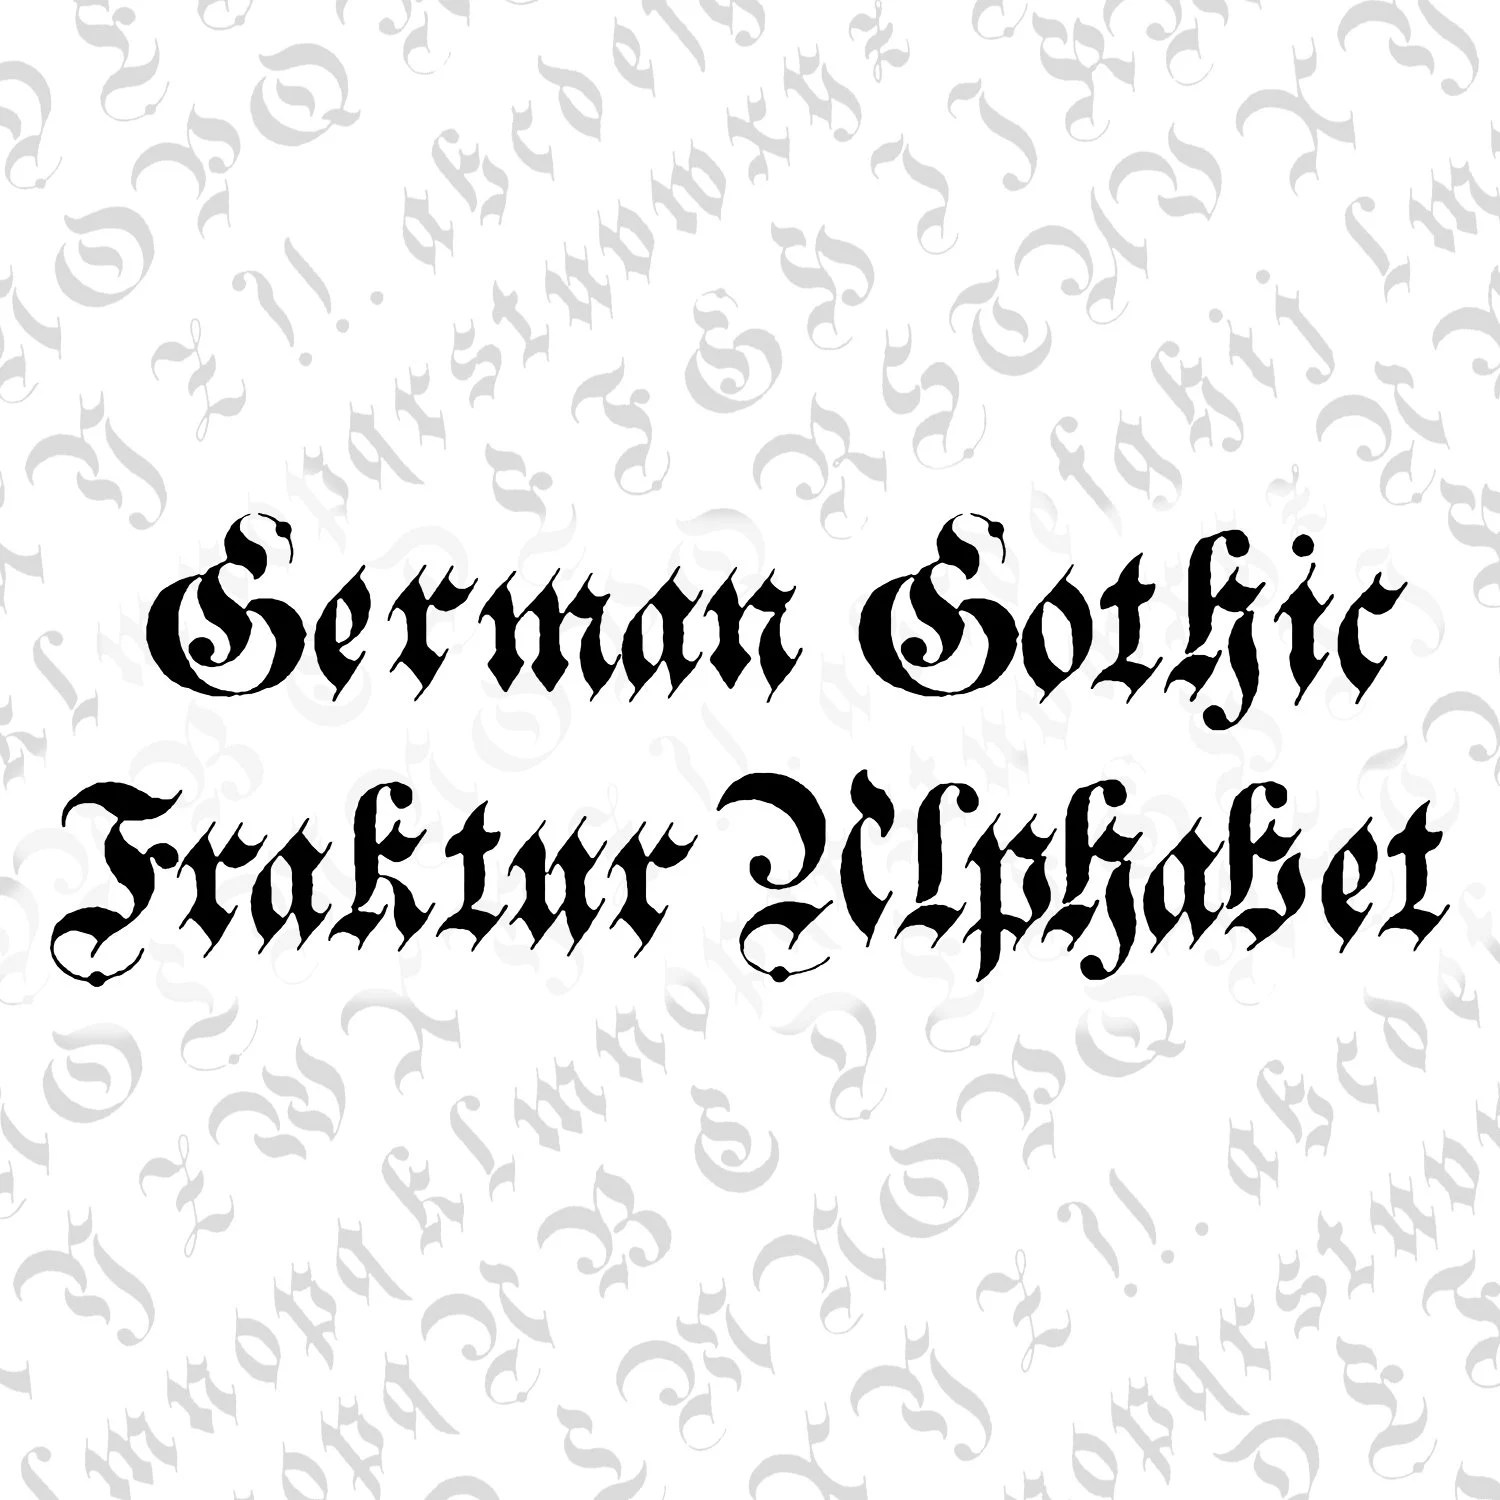 Calligraphy Fonts Victorian Victorian German Gothic Fraktur Ornamental Alphabet Vector Clipart Vintage Ornamental Uppercase Lowercase Letters Calligraphy Svg Png